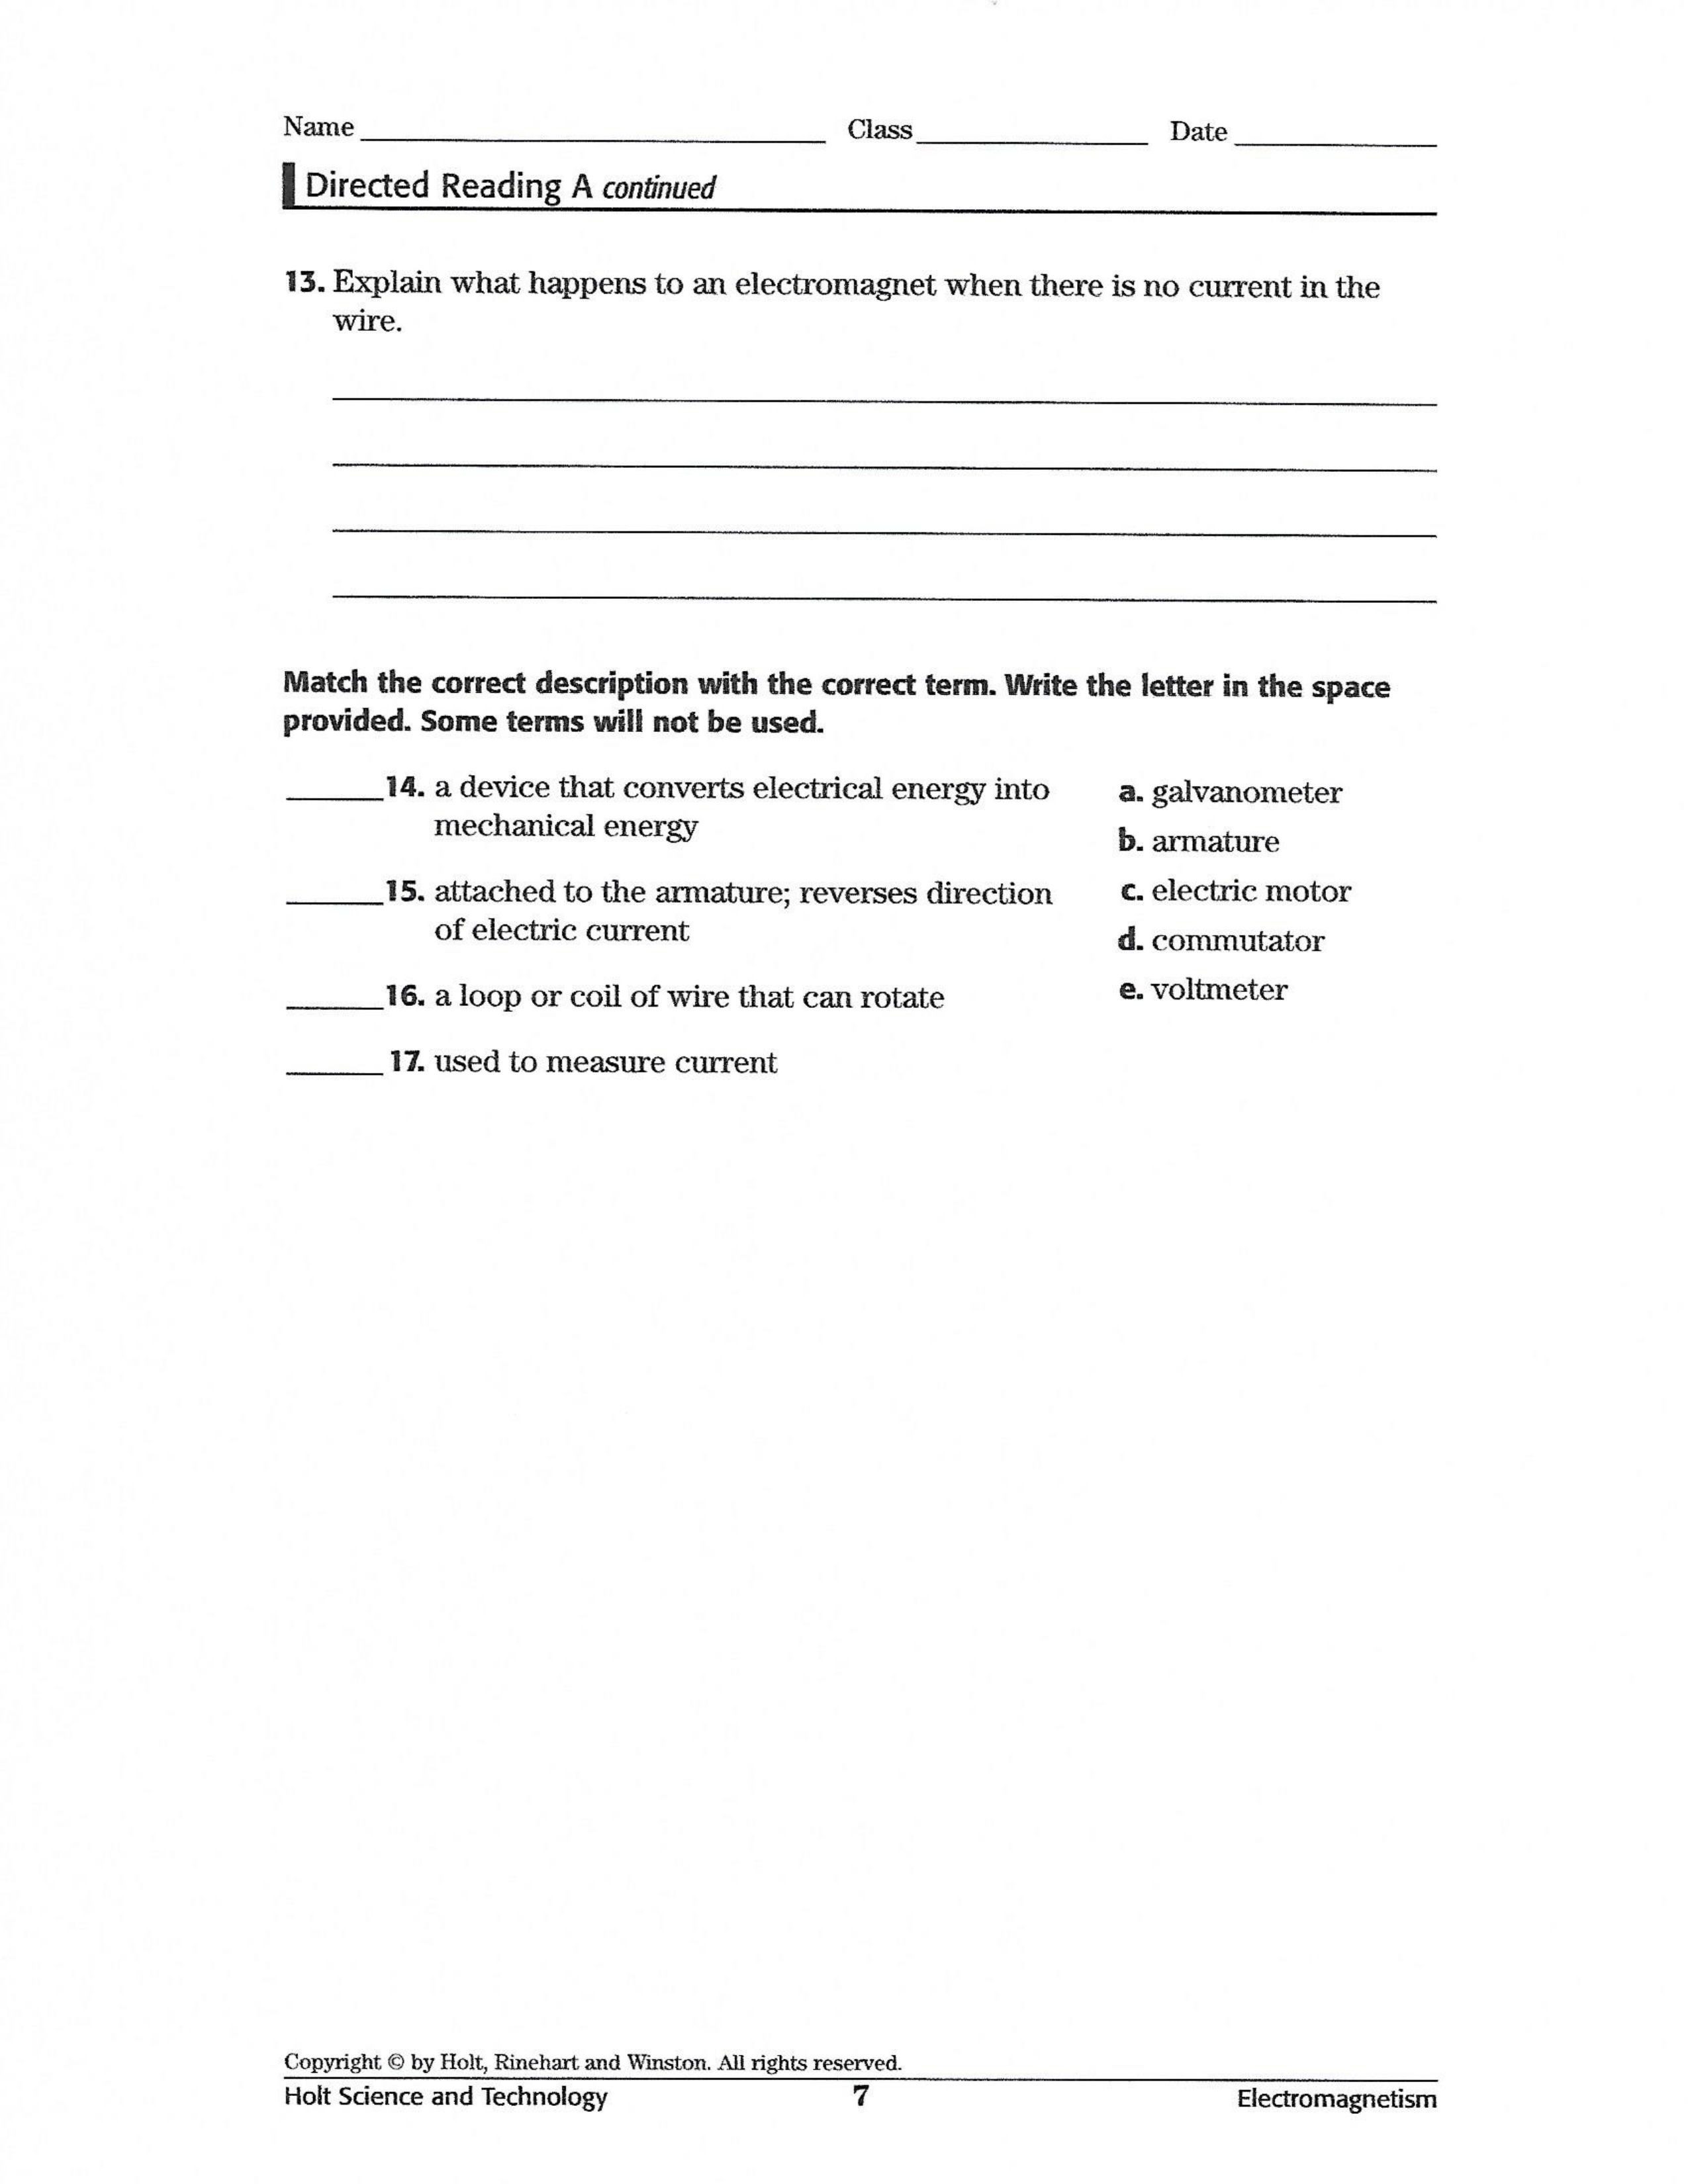 Magnetism From Electricity Worksheet